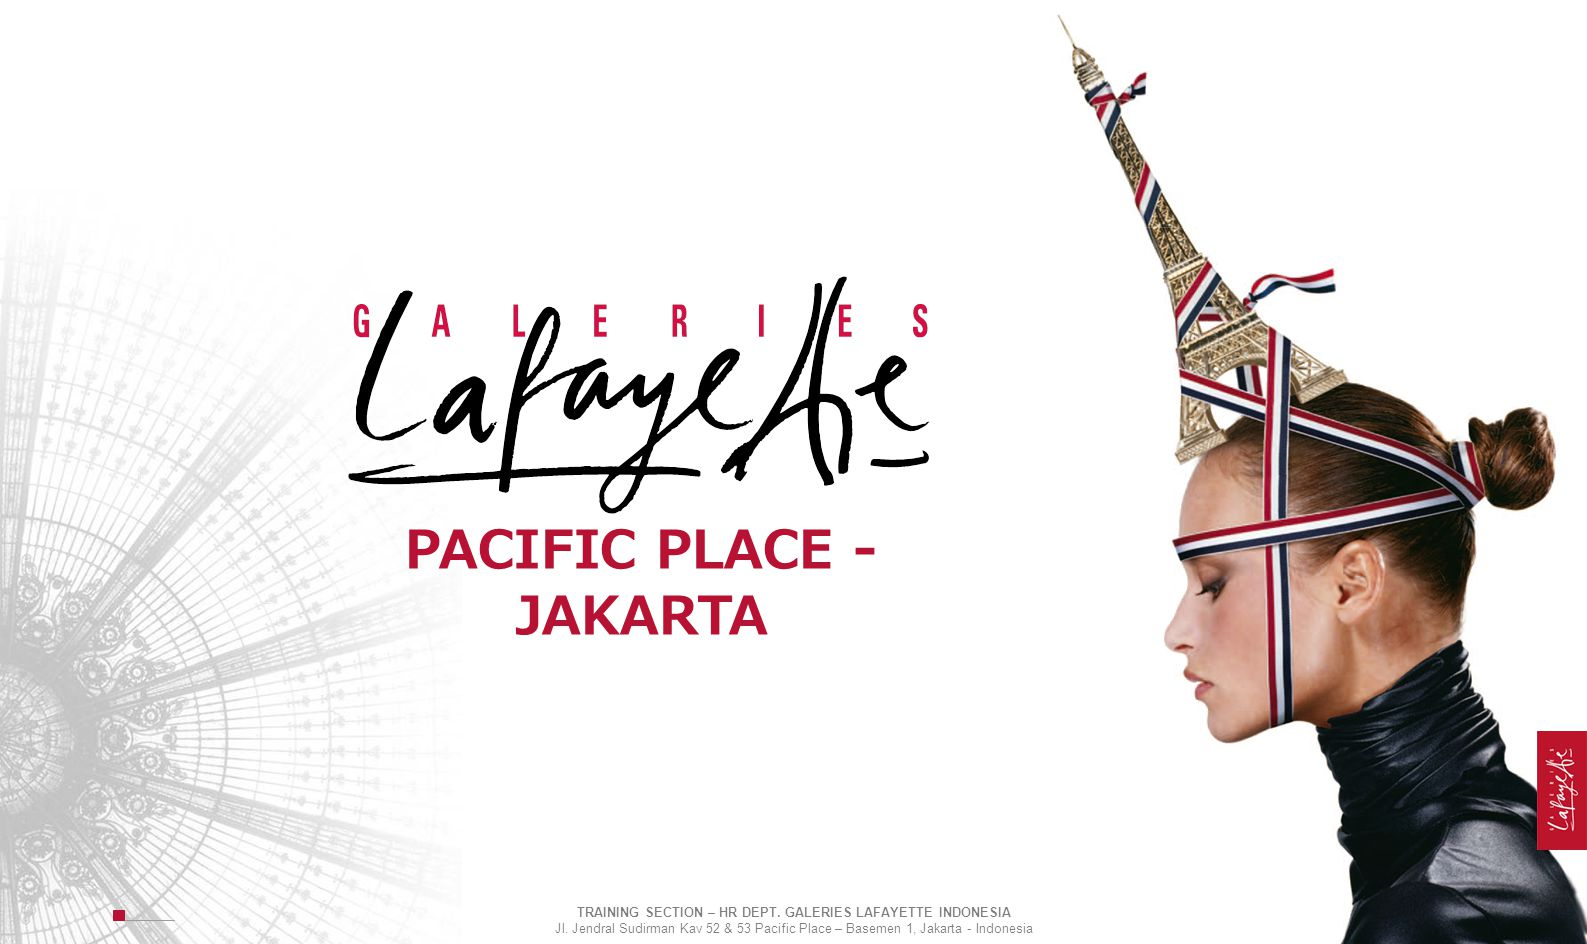 PACIFIC PLACE - JAKARTA